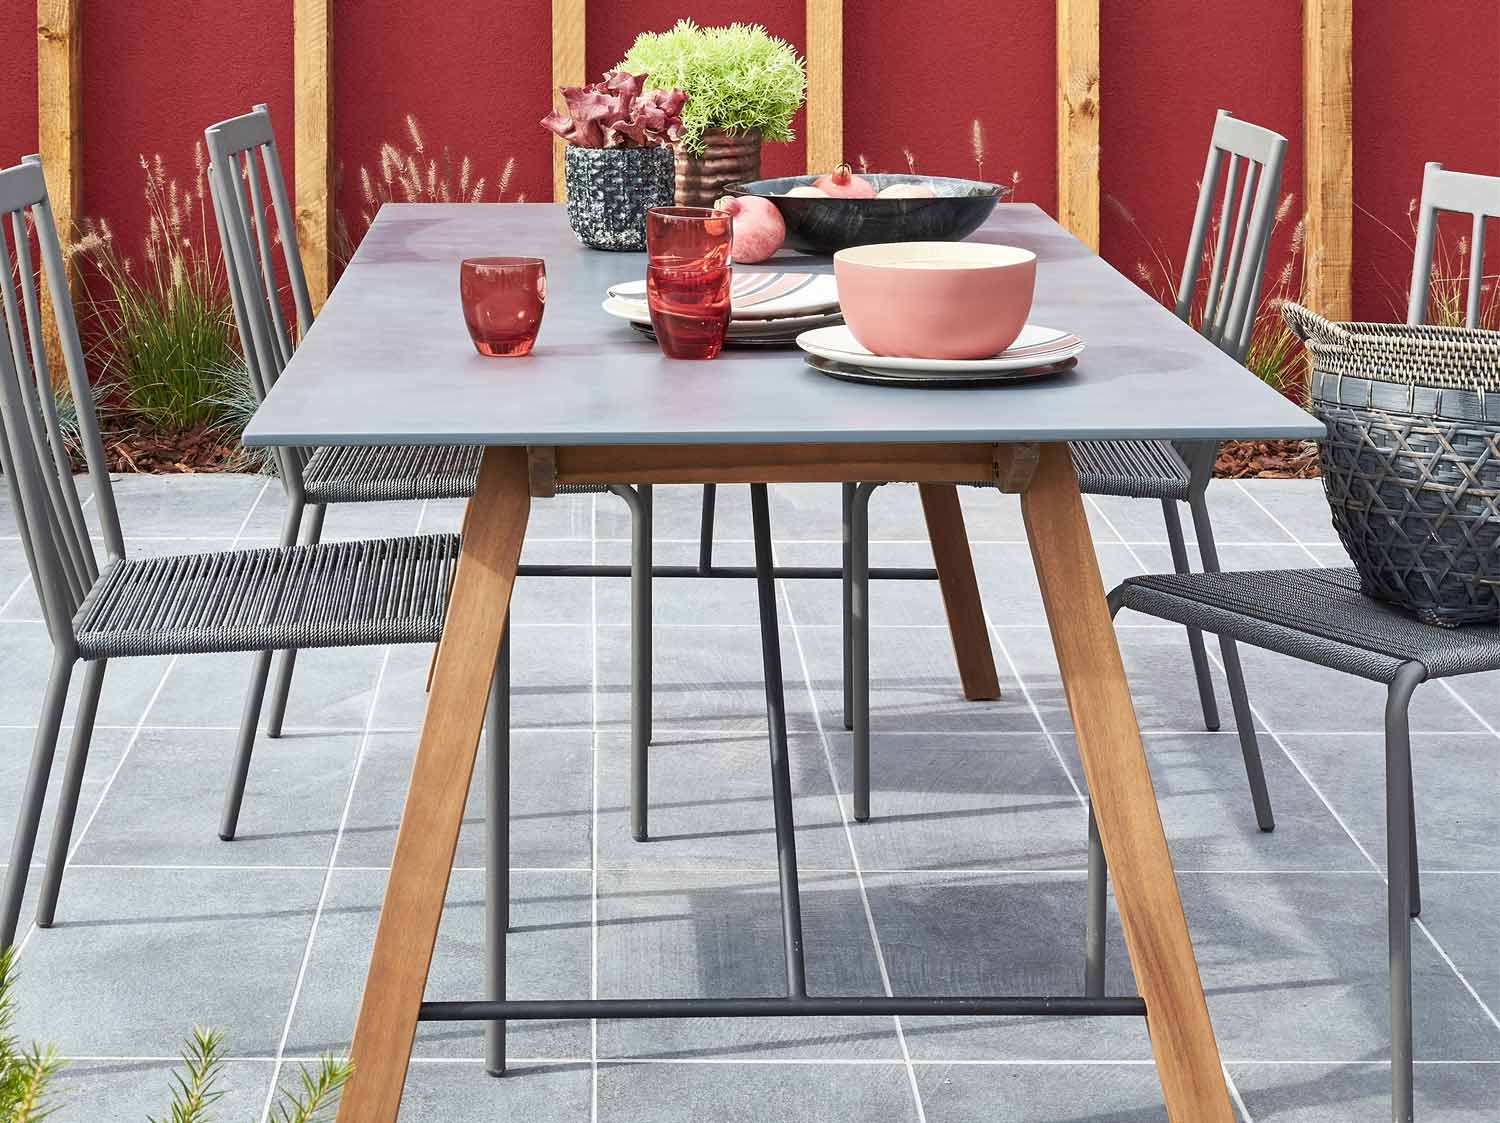 La nouvelle collection de mobilier de jardin 2017